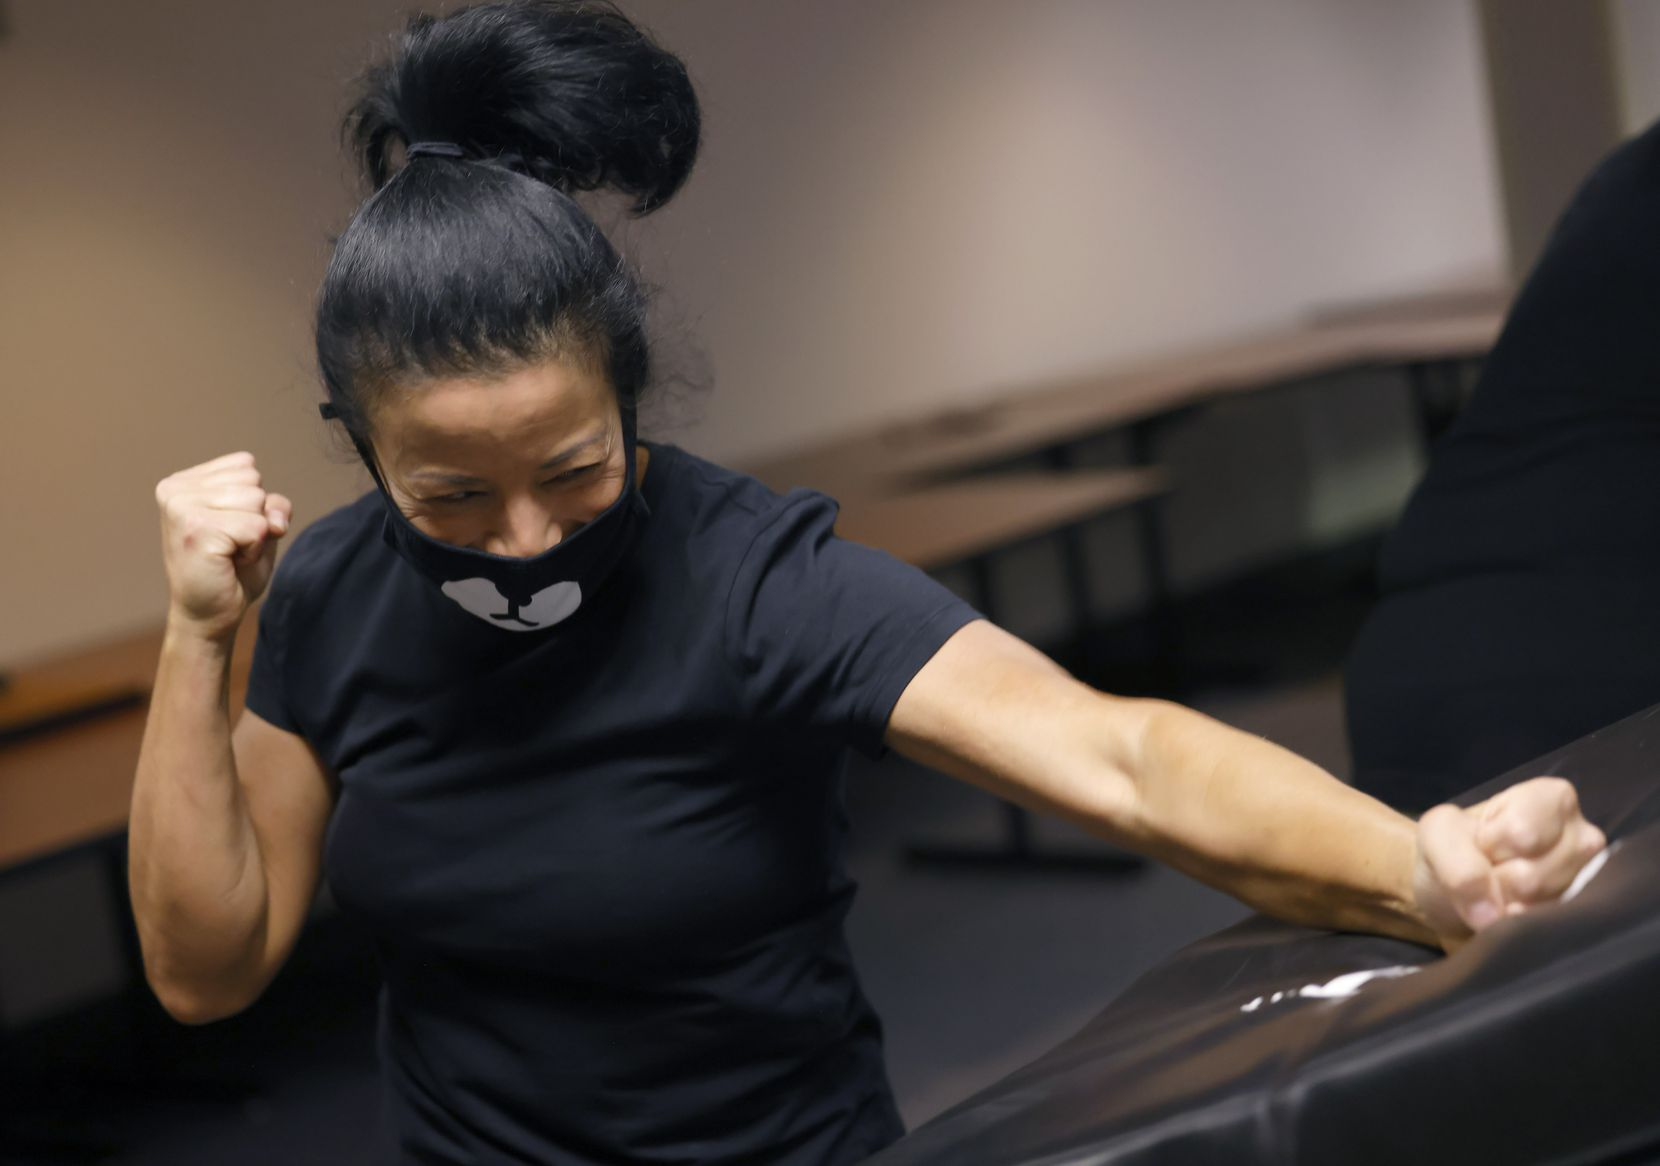 United Airlines flight attendant Elaine Lackland practices self-defense measures with a combat training pad.